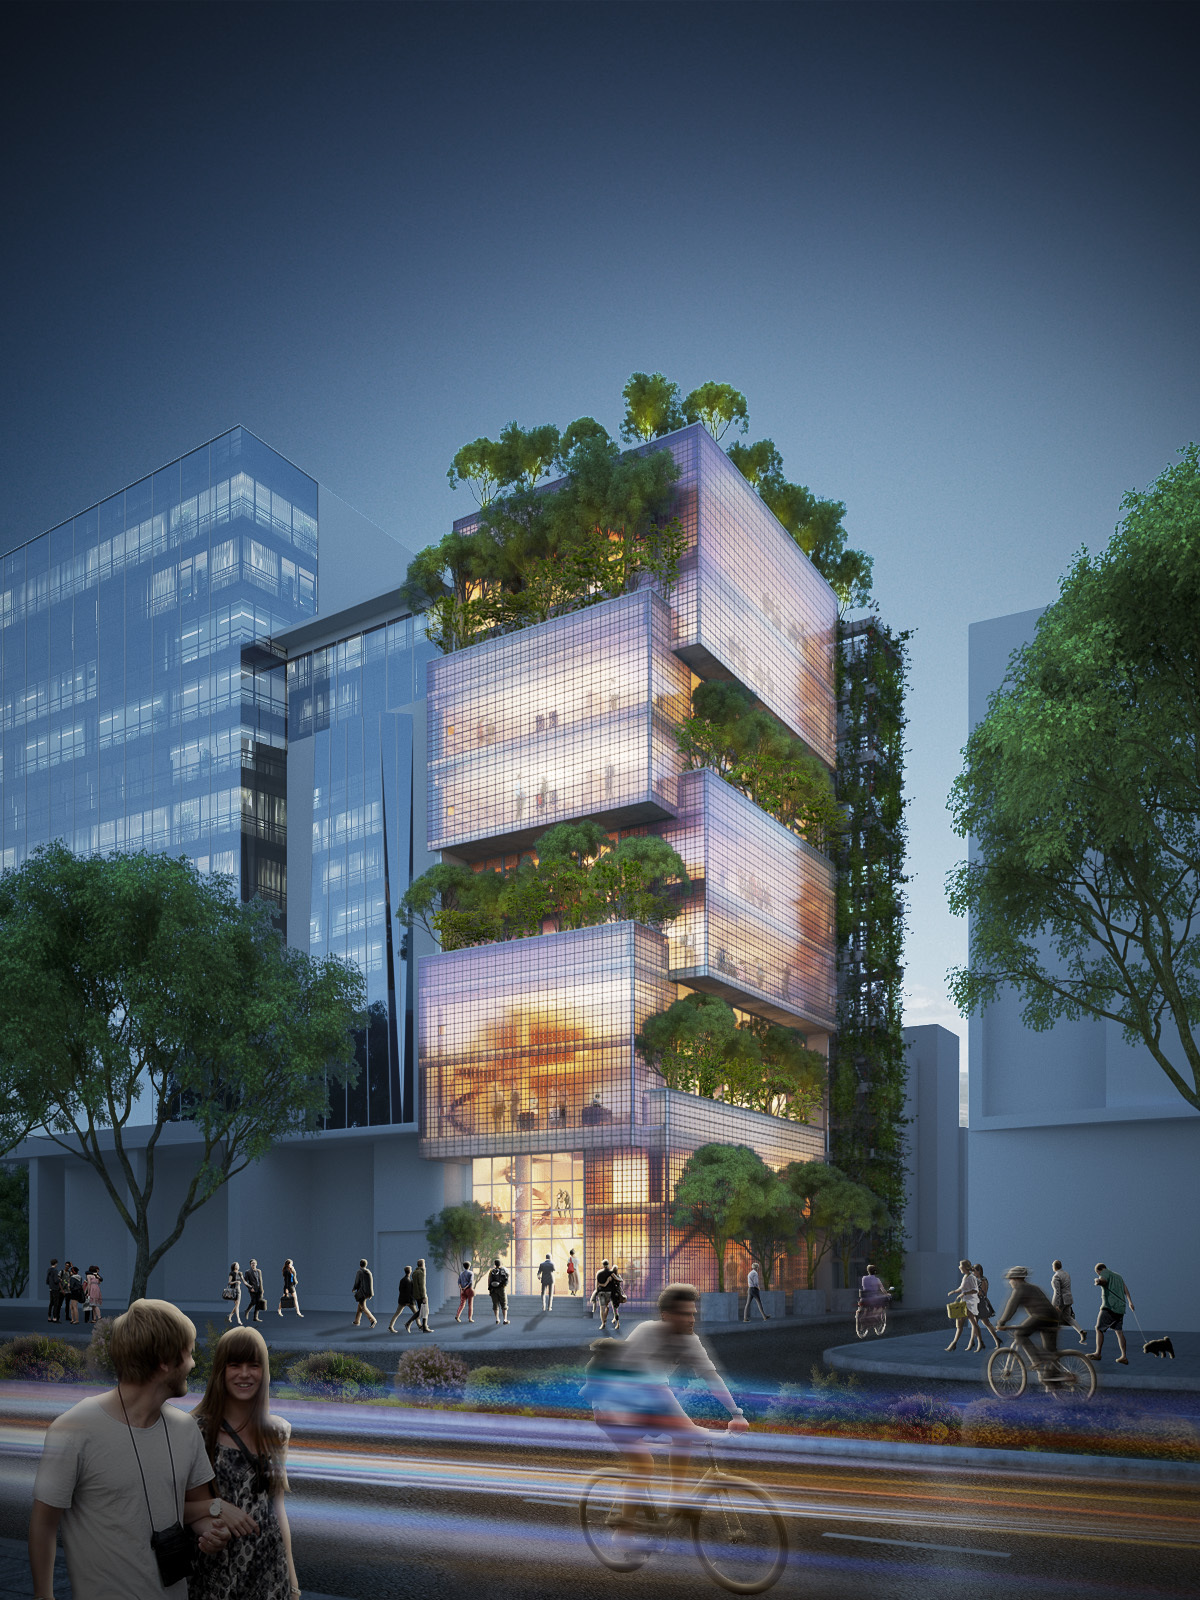 vtn architects design stacked glass block headquarters in ho chi minh city exterior night view - Architects Design